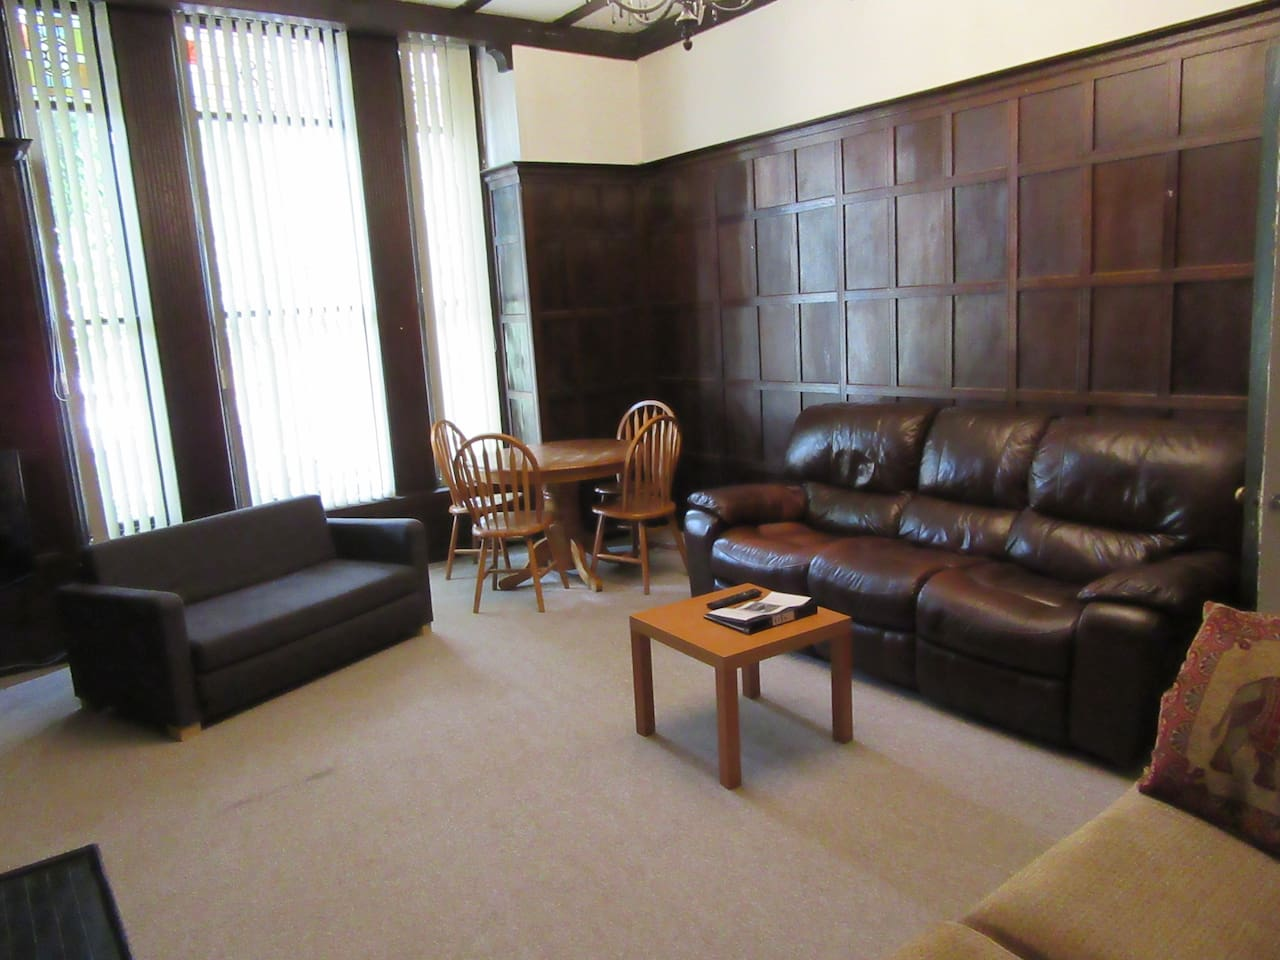 living room, with wood paneling